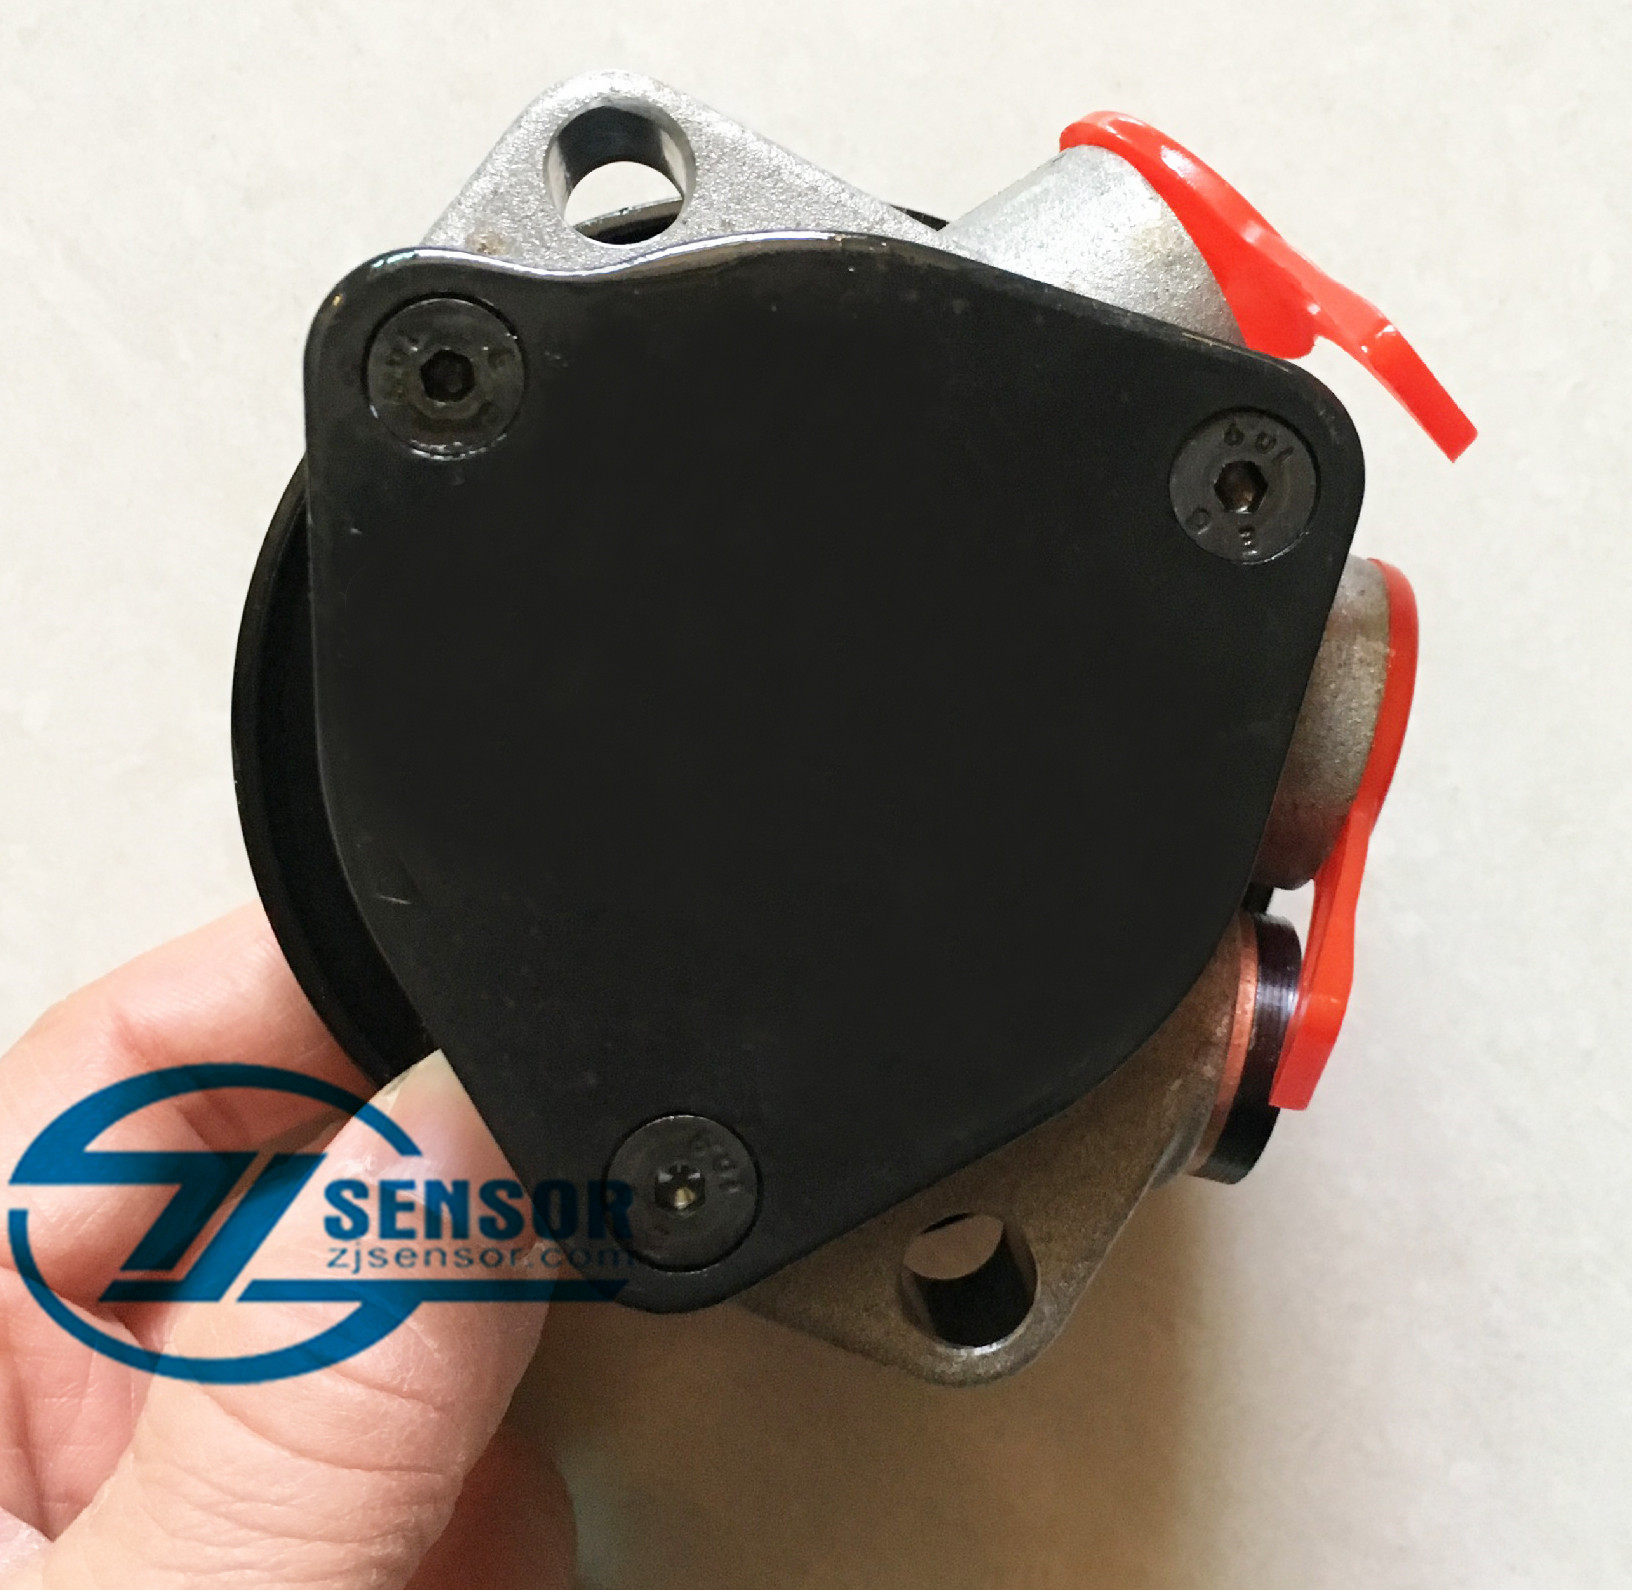 02112673 Fuel Transfer Lift Pump 04503573 for Deutz BF4M2012 BF6M2012 BF6M1013